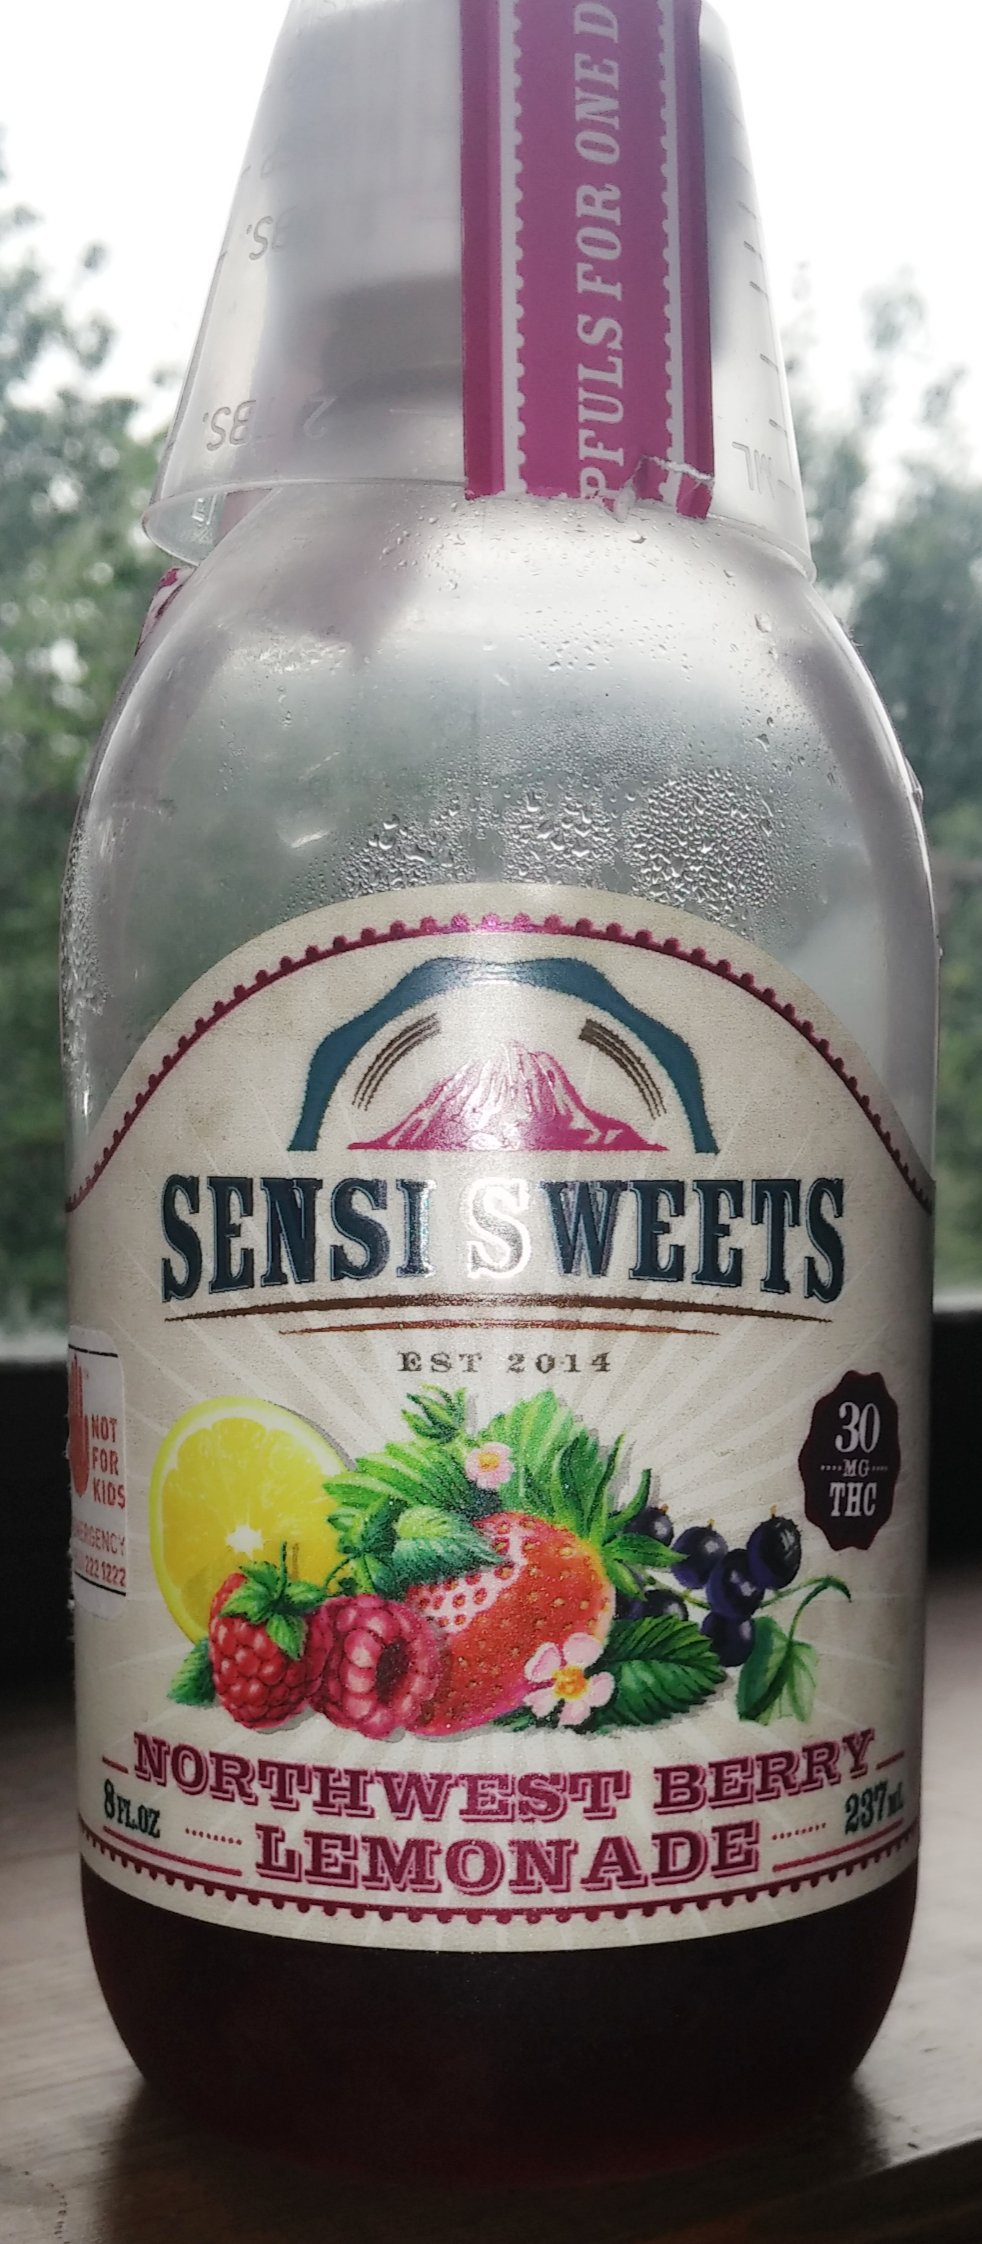 Sensi Sweets Northwest Berry Lemonade